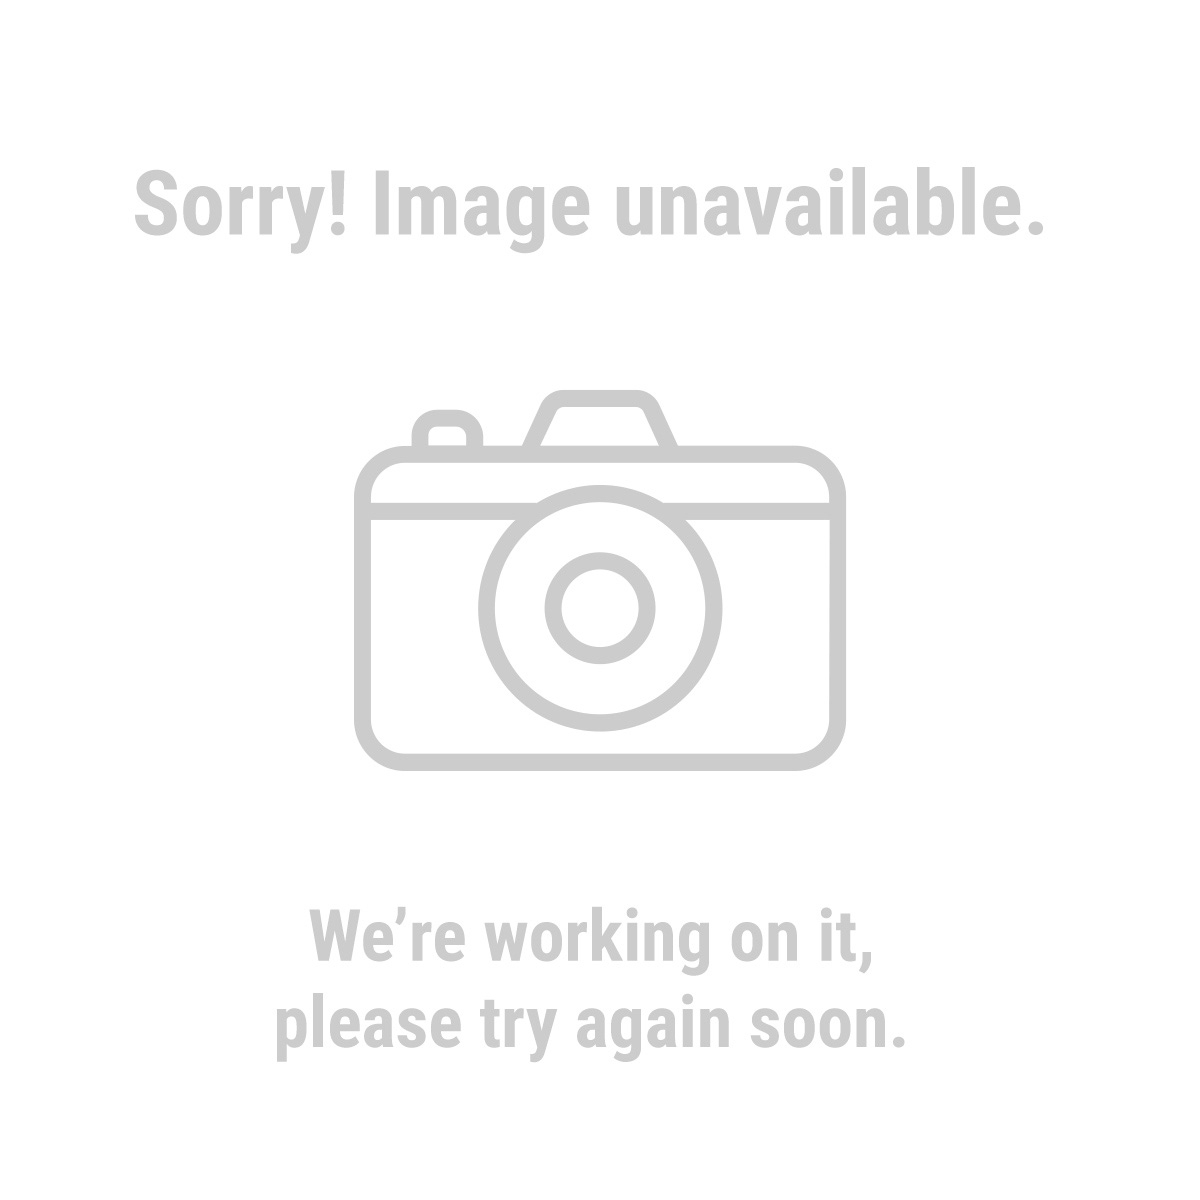 20 Bin Portable Parts Storage Case